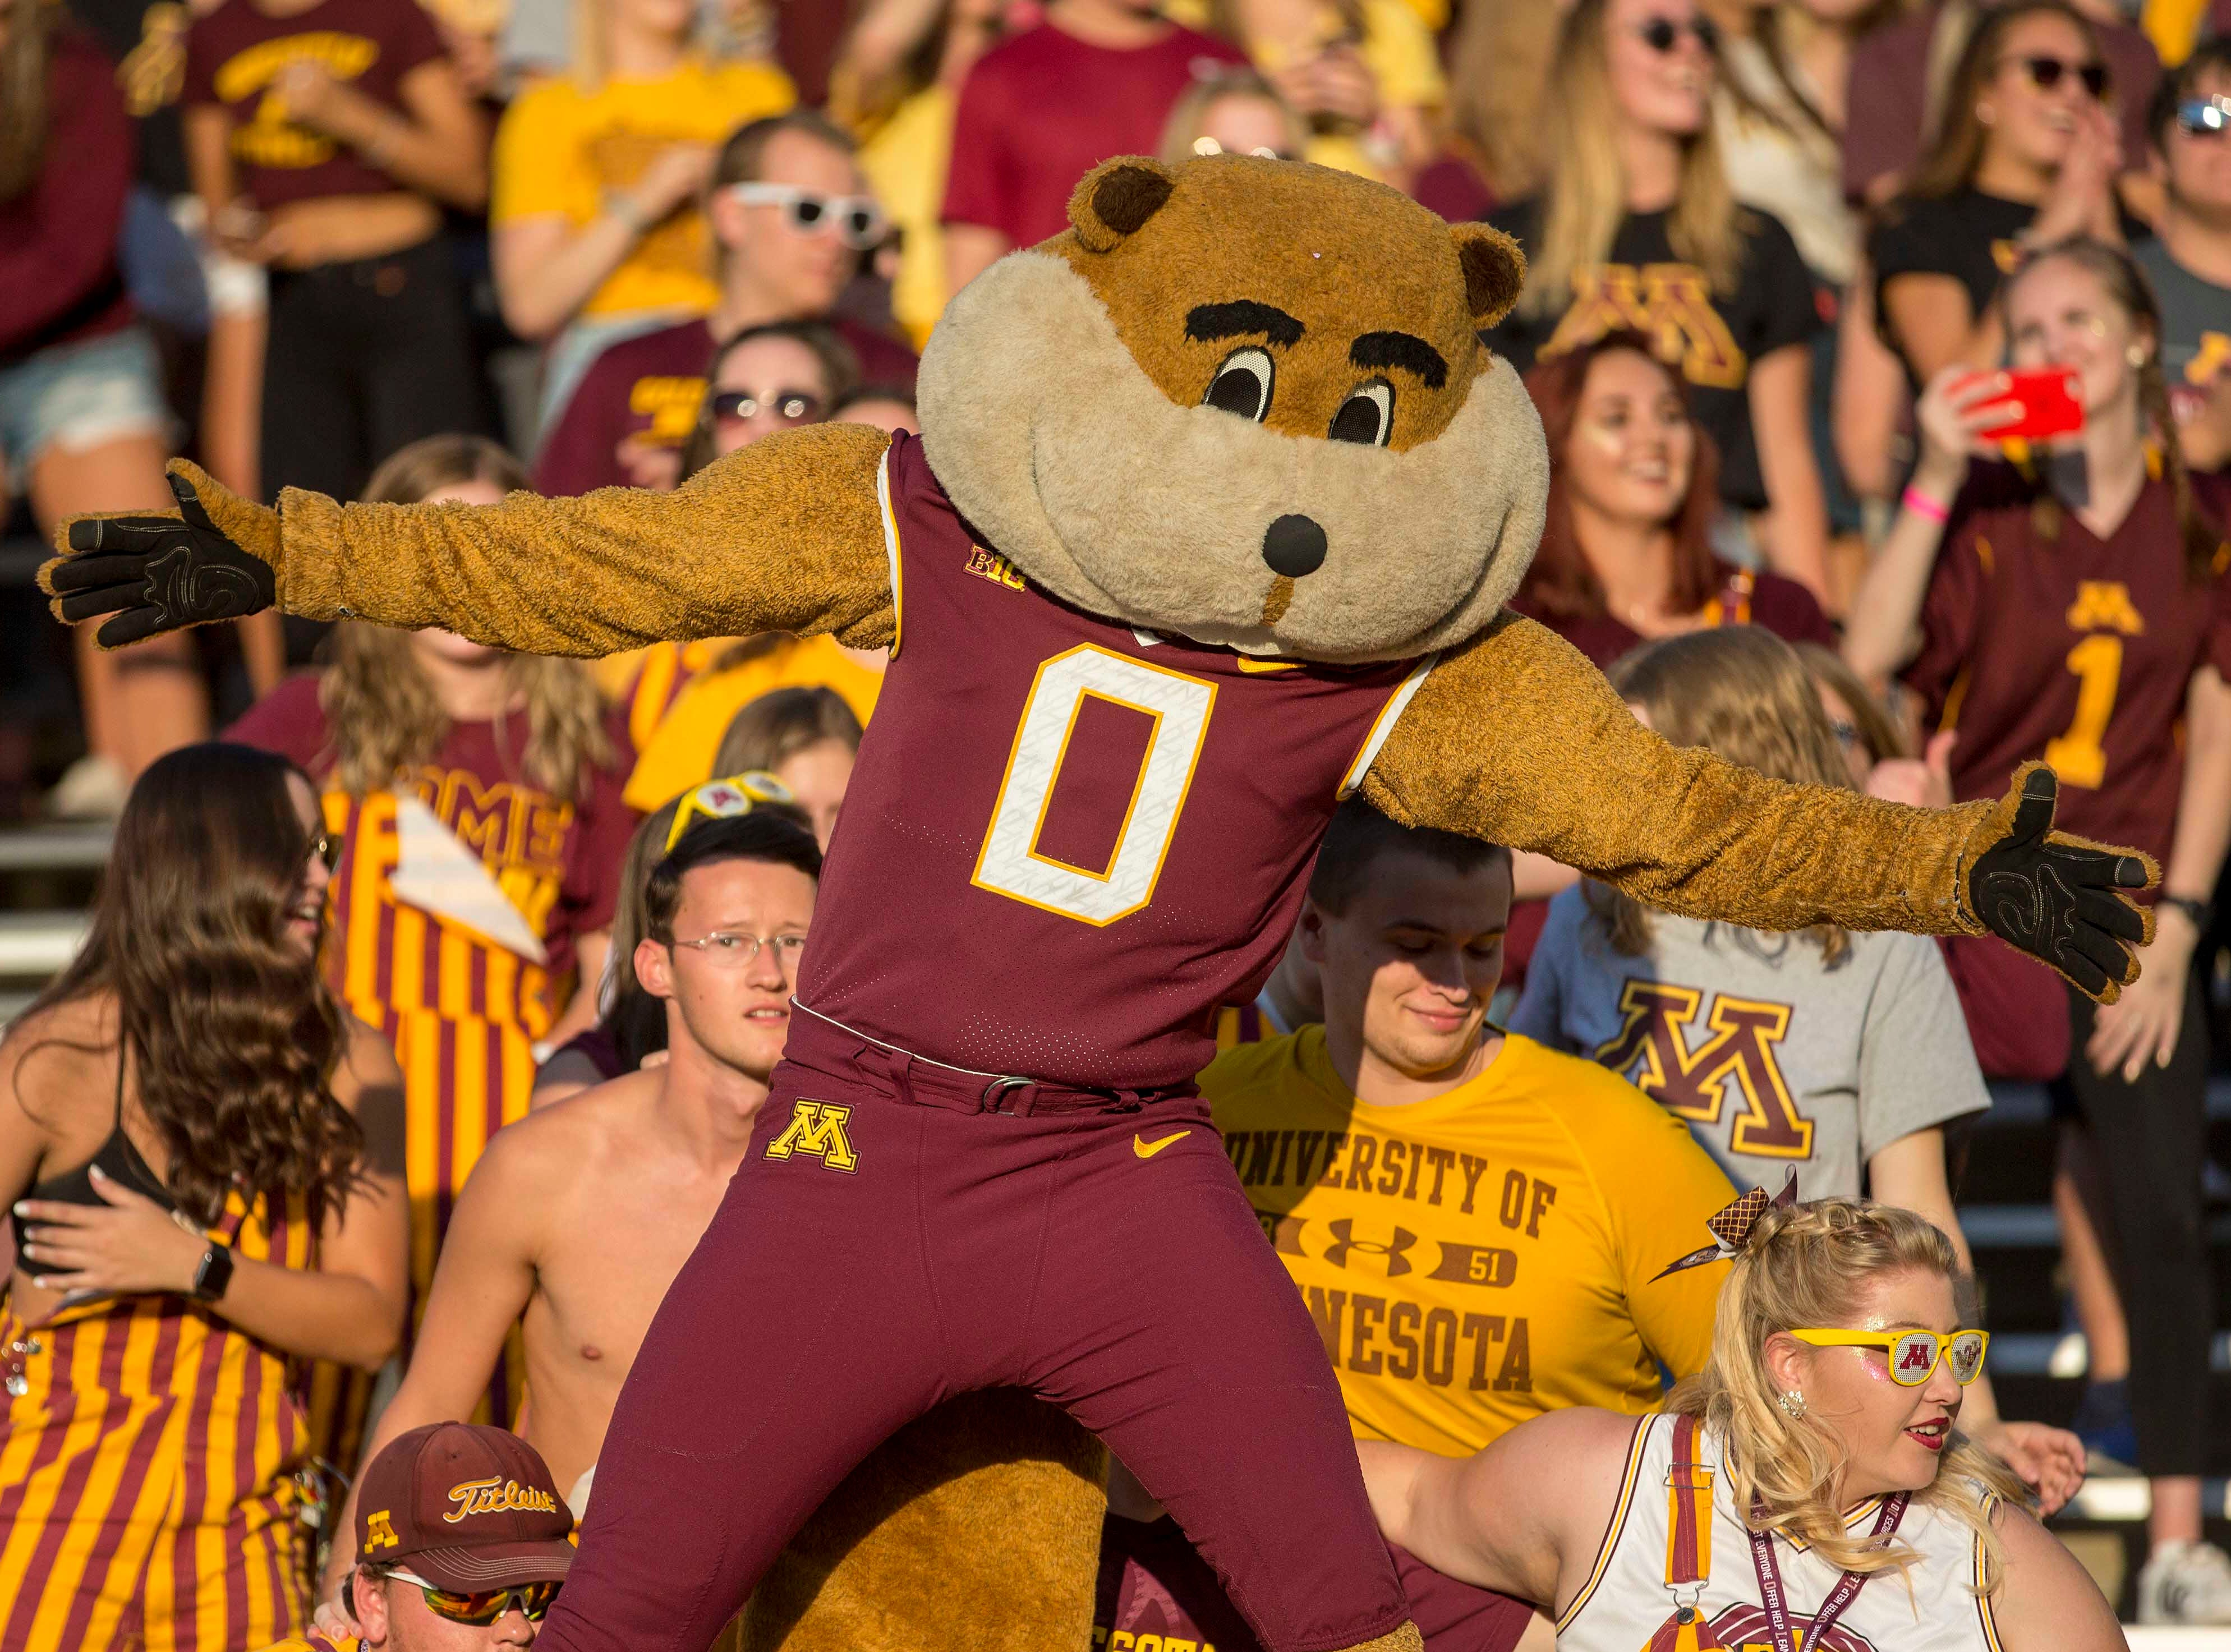 Week 2: Minnesota Golden Gophers mascot Goldy pumps up the crowd right before kickoff against Fresno State Bulldogs at TCF Bank Stadium.